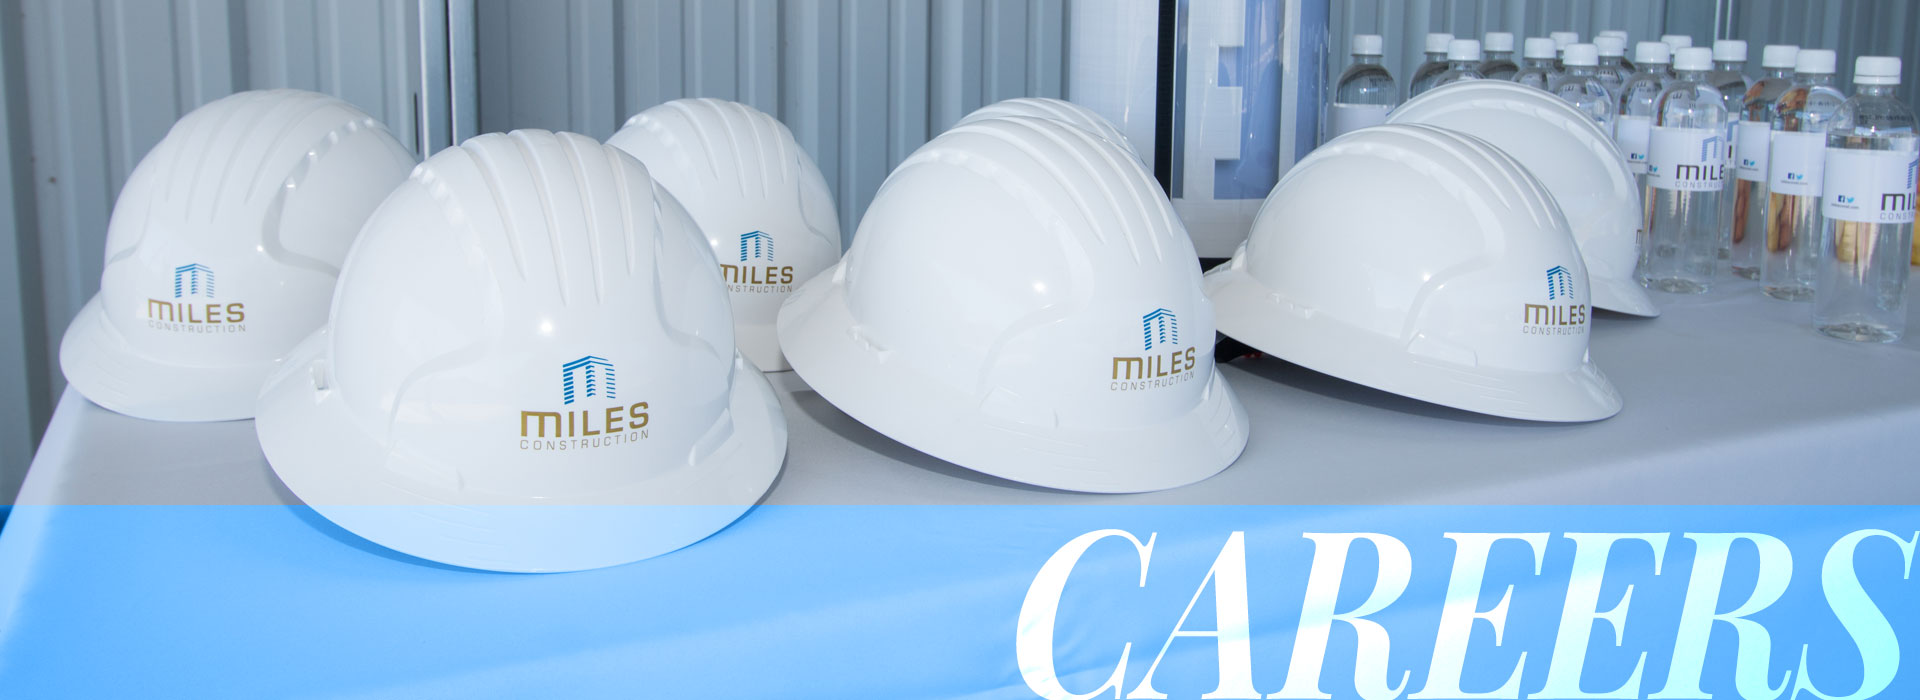 Miles Construction Careers